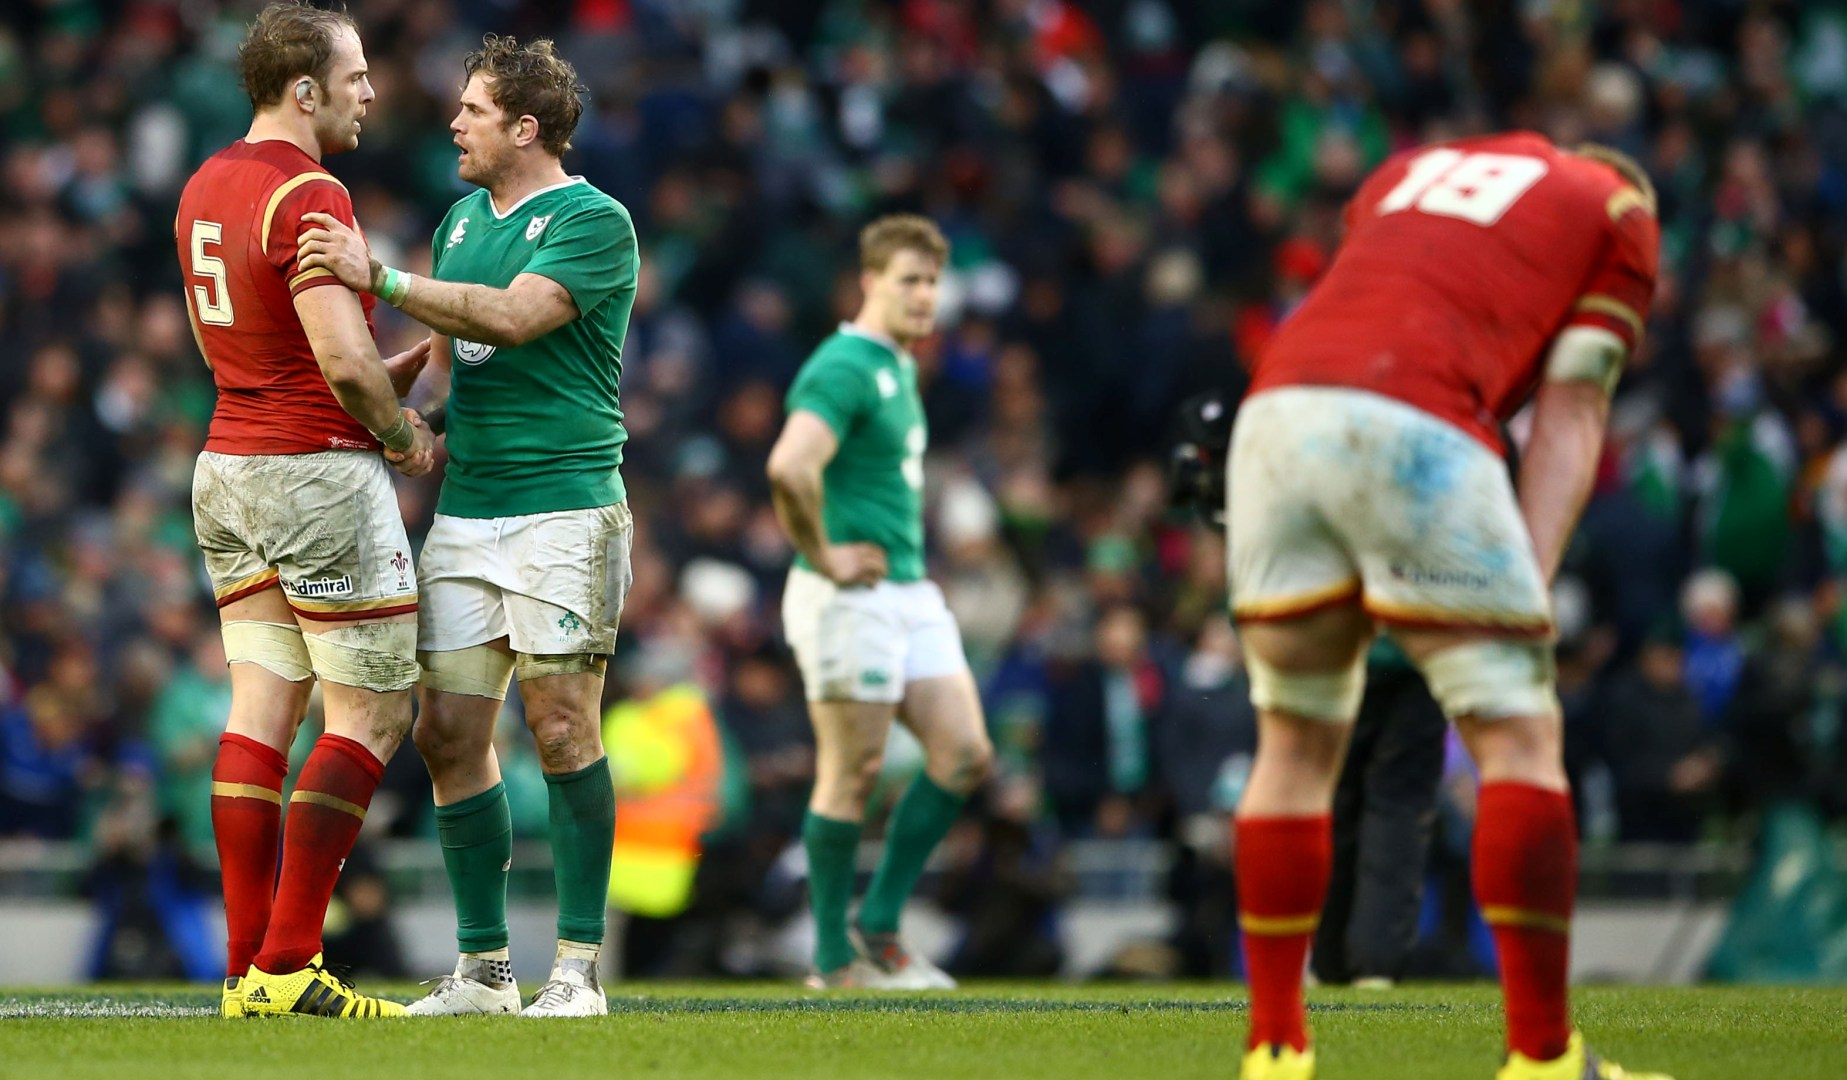 Lions report: Honours even in dramatic Dublin draw